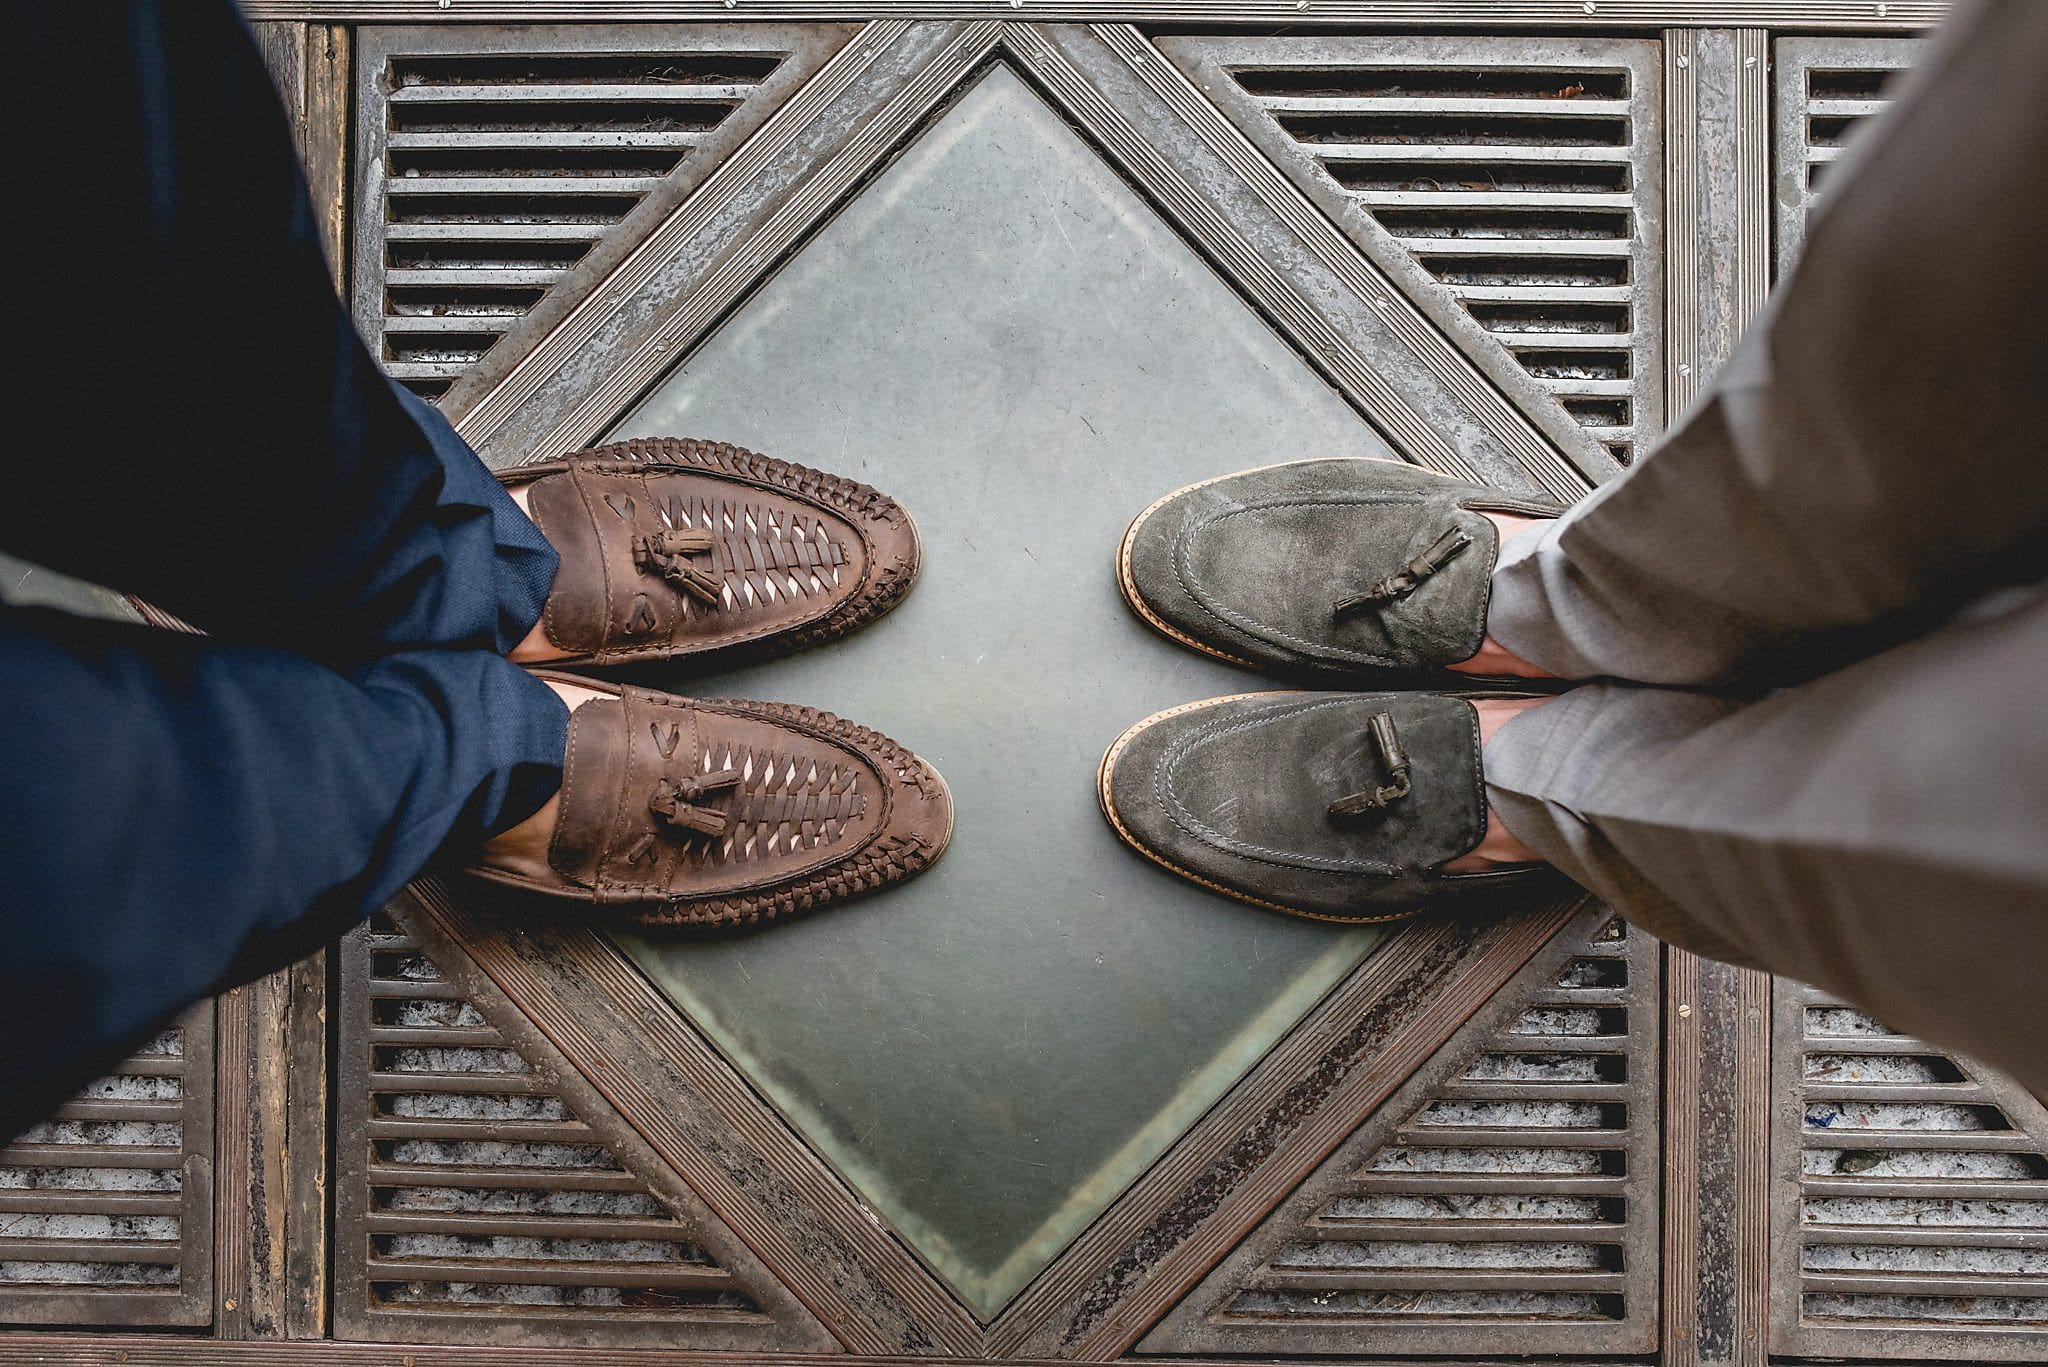 Two grooms' loafers face each other from above on a diamond-patterned tile at København Rådhus